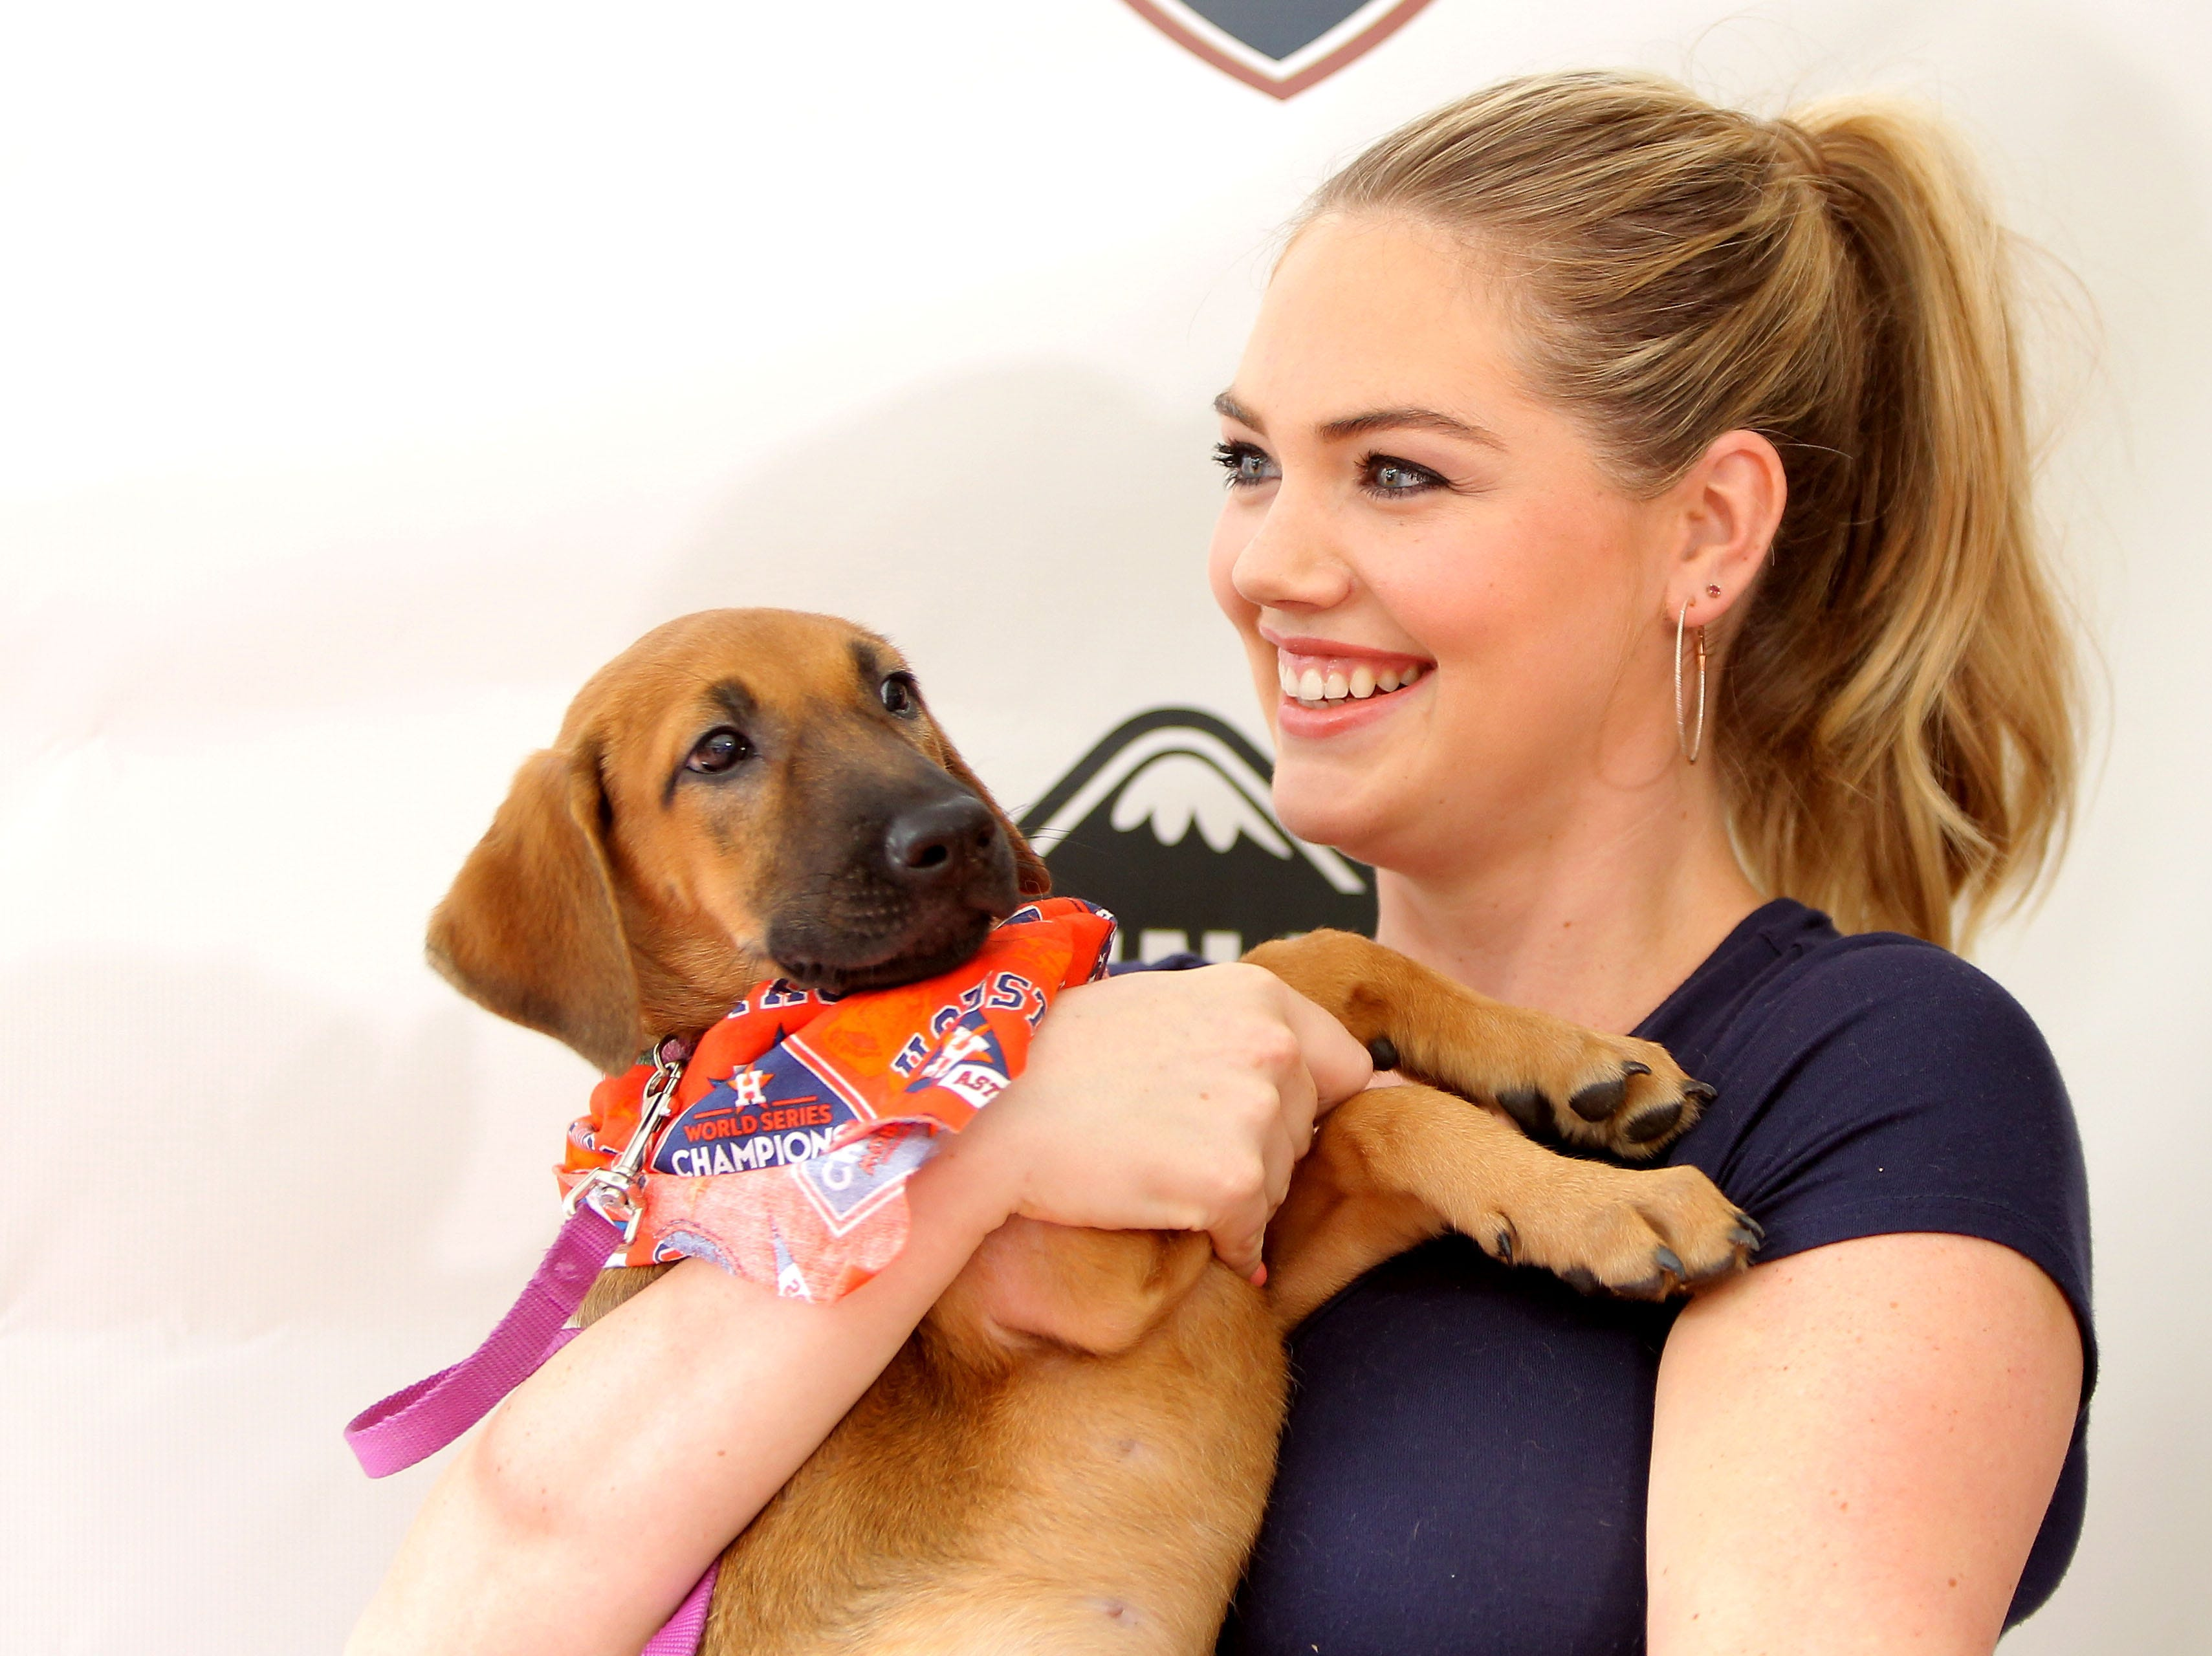 Kate Upton poses for photos with a dog up for adoption during the Astros' Dog Day event.